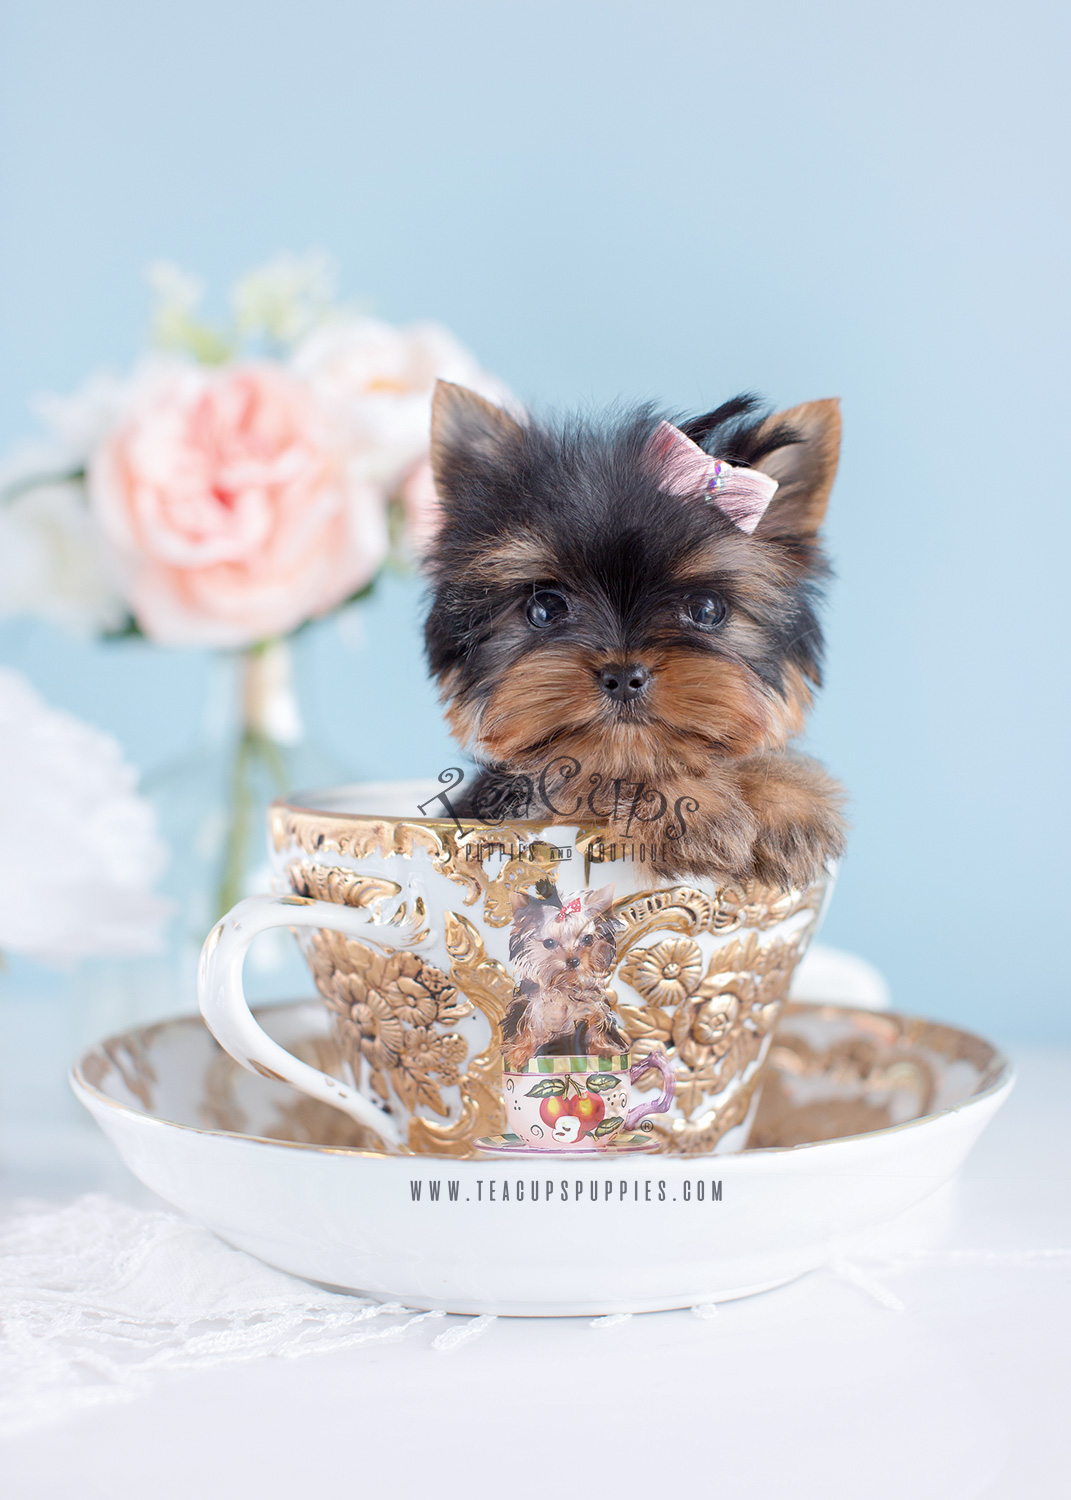 Cute Little Yorkie Puppies South Florida Teacups